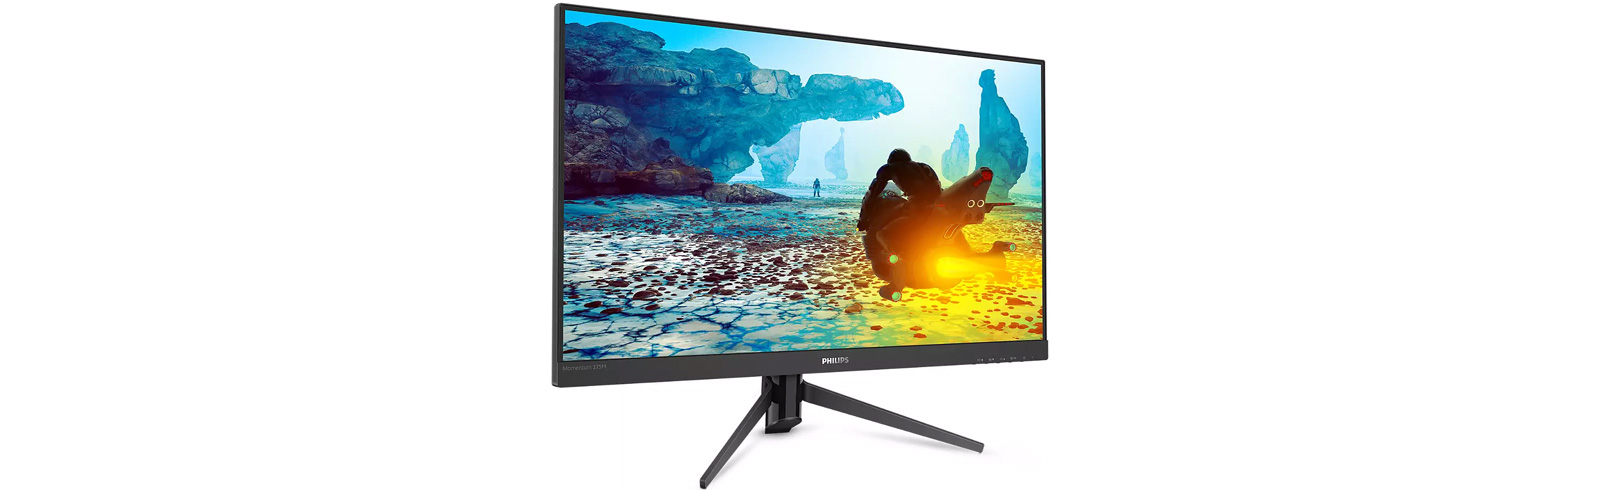 Philips 275M8RZ from the Momentum series goes official